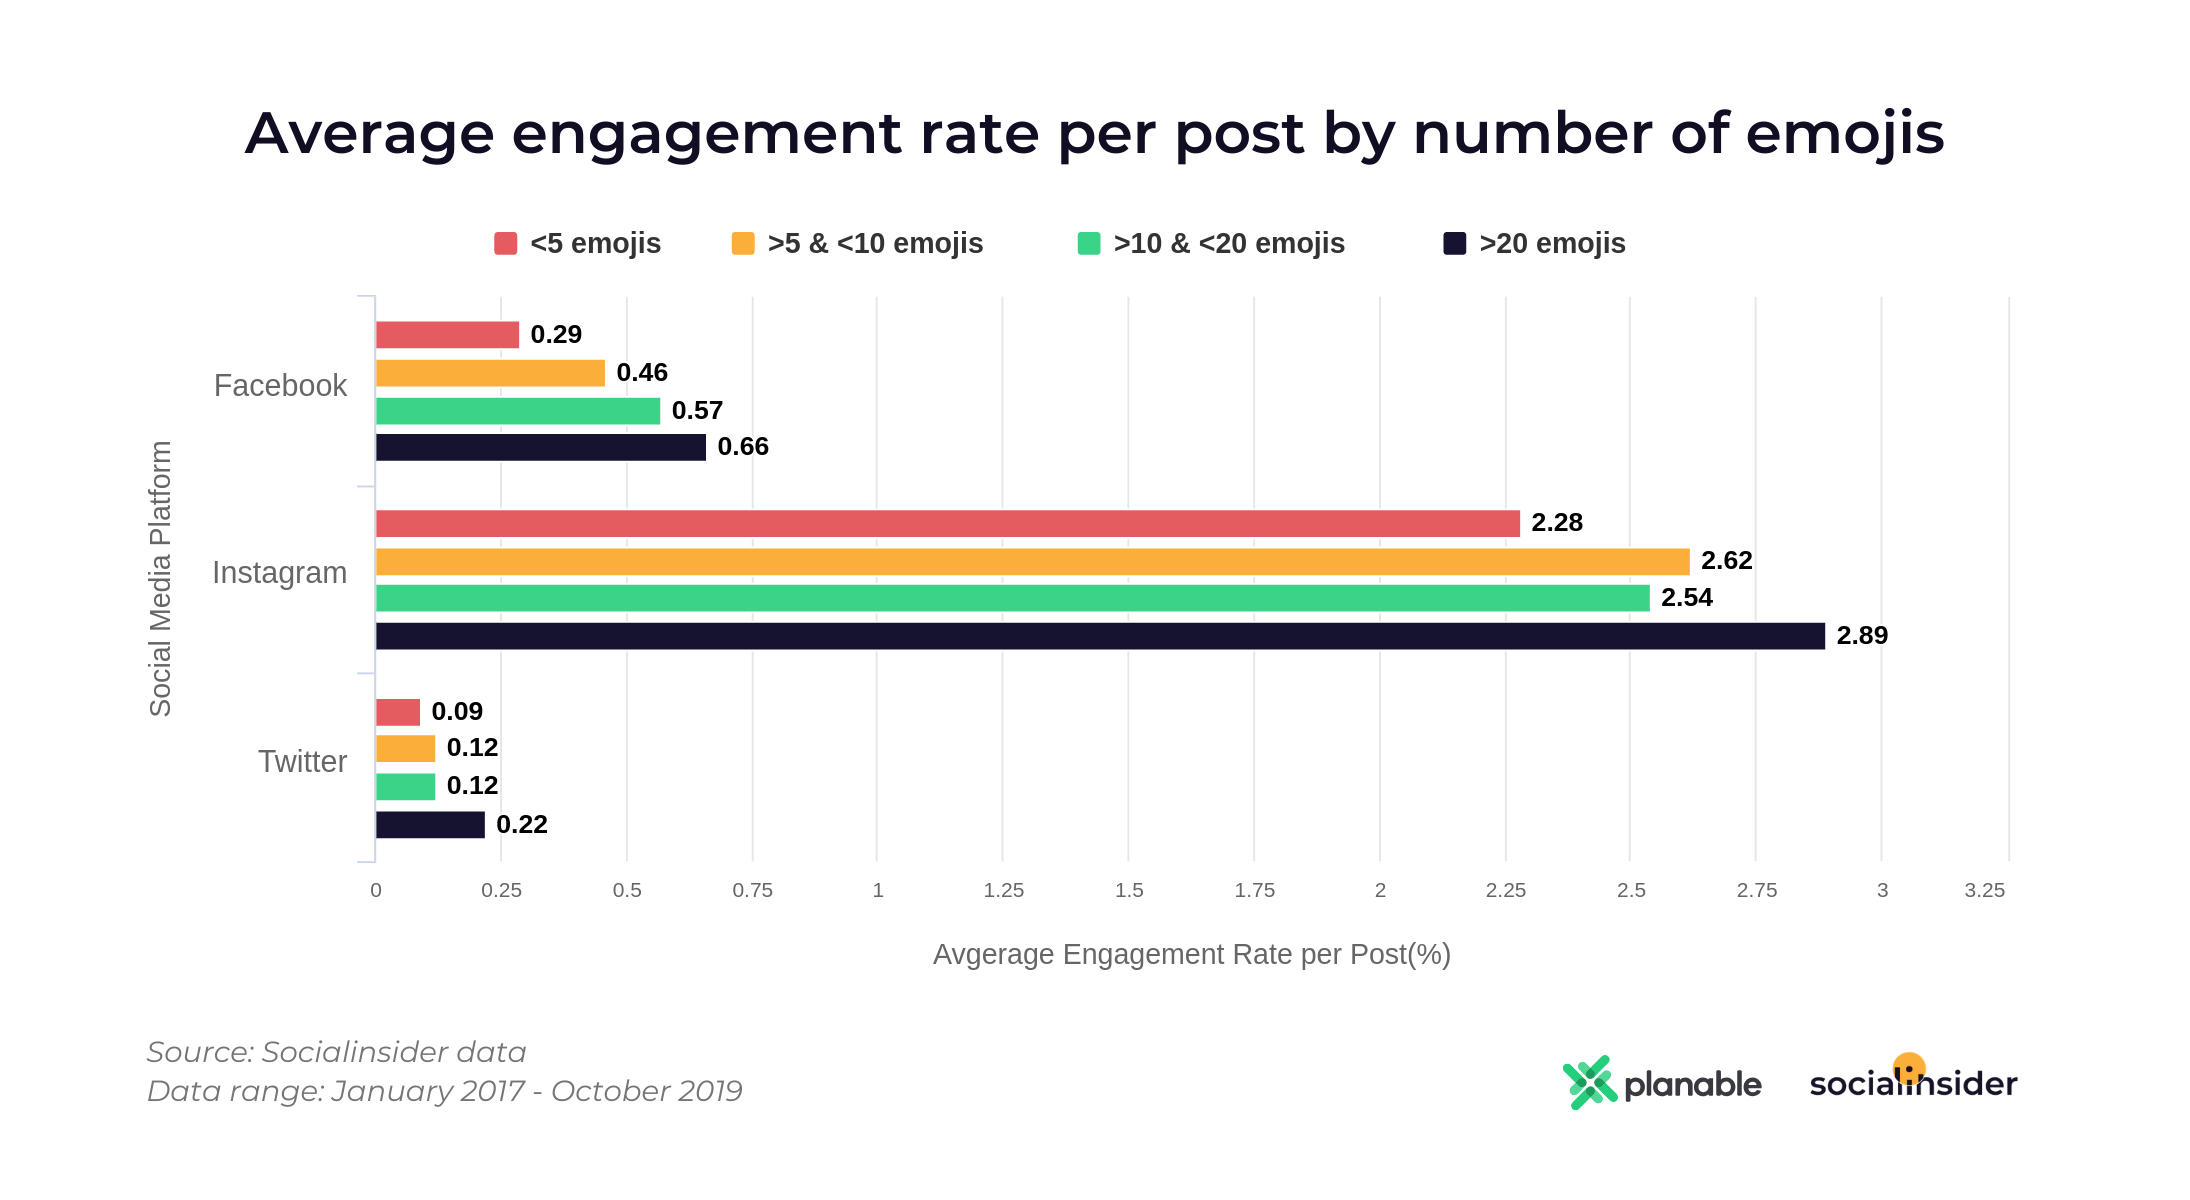 Engagement by number of emojis